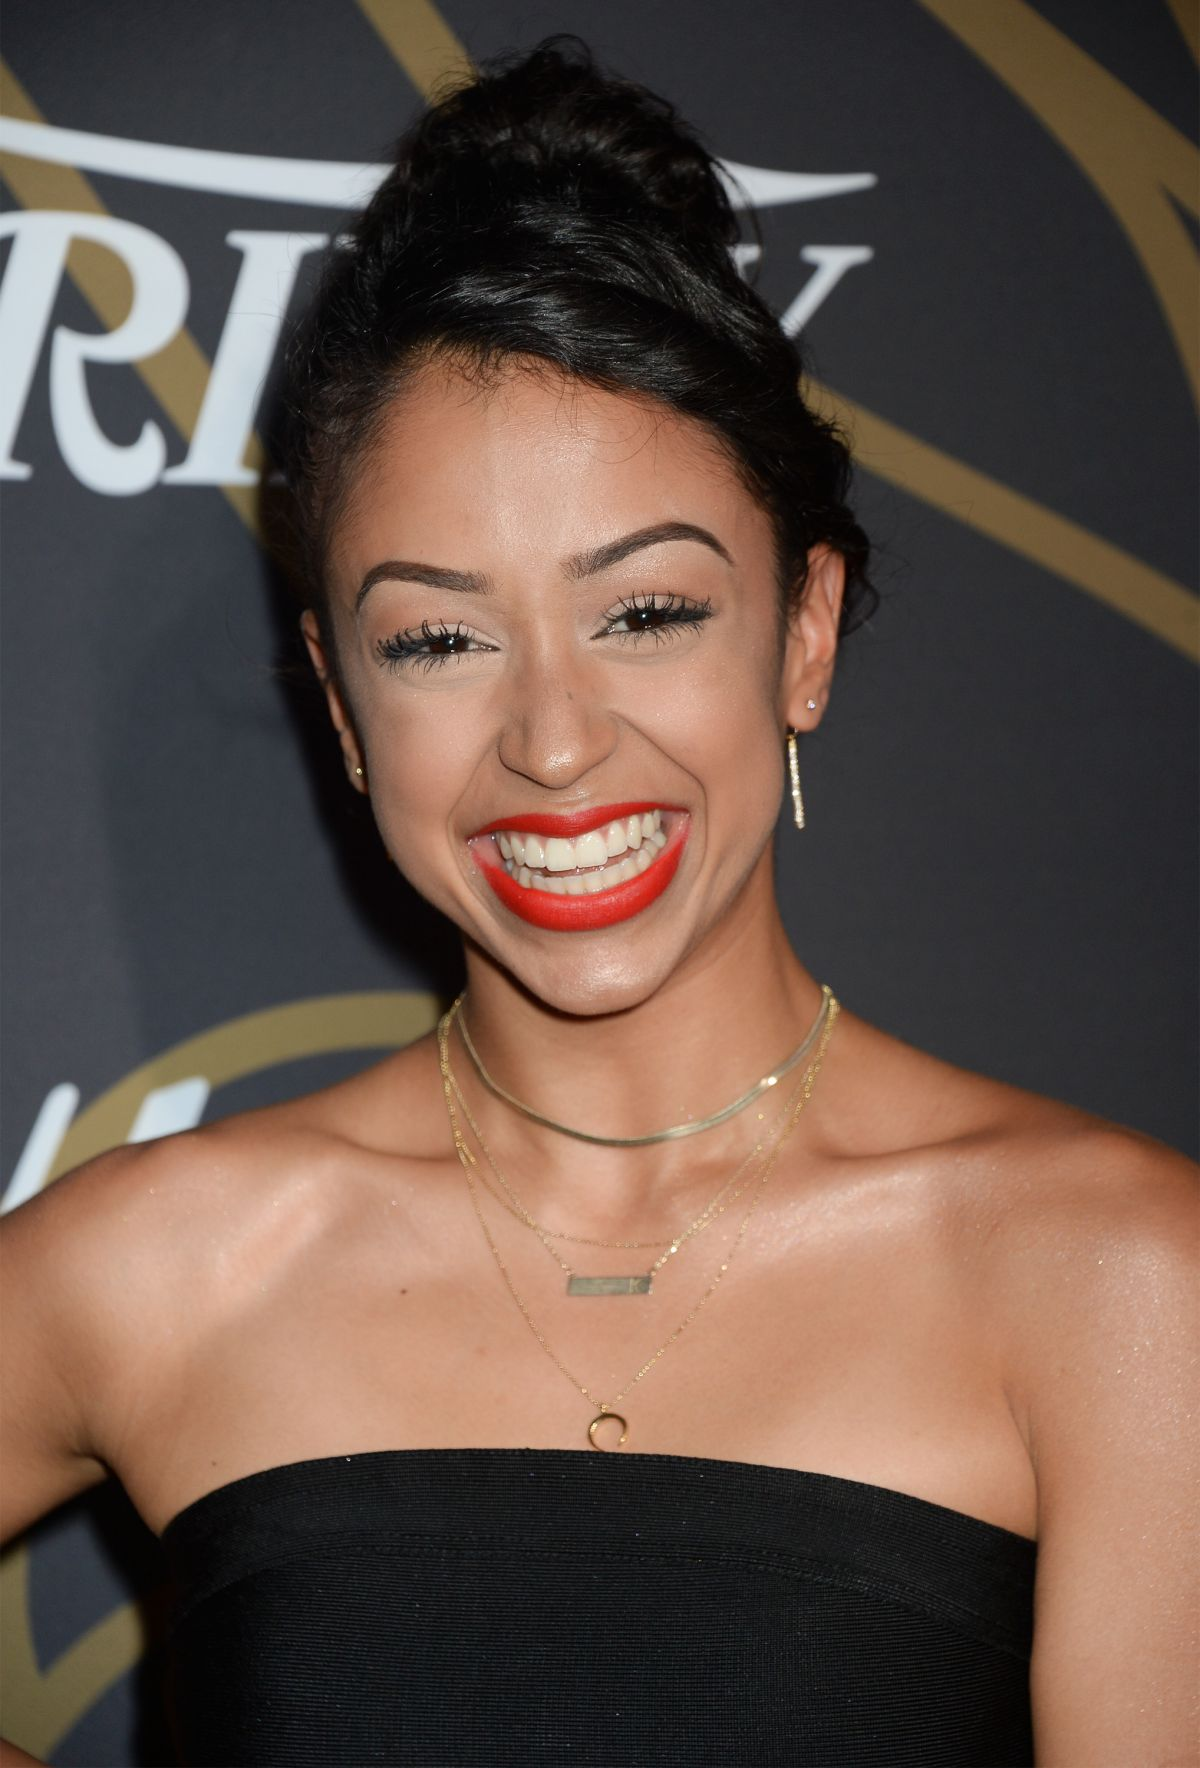 LIZA KOSHY at Variety Power of Young Hollywood in Los Angeles 08/08/2017